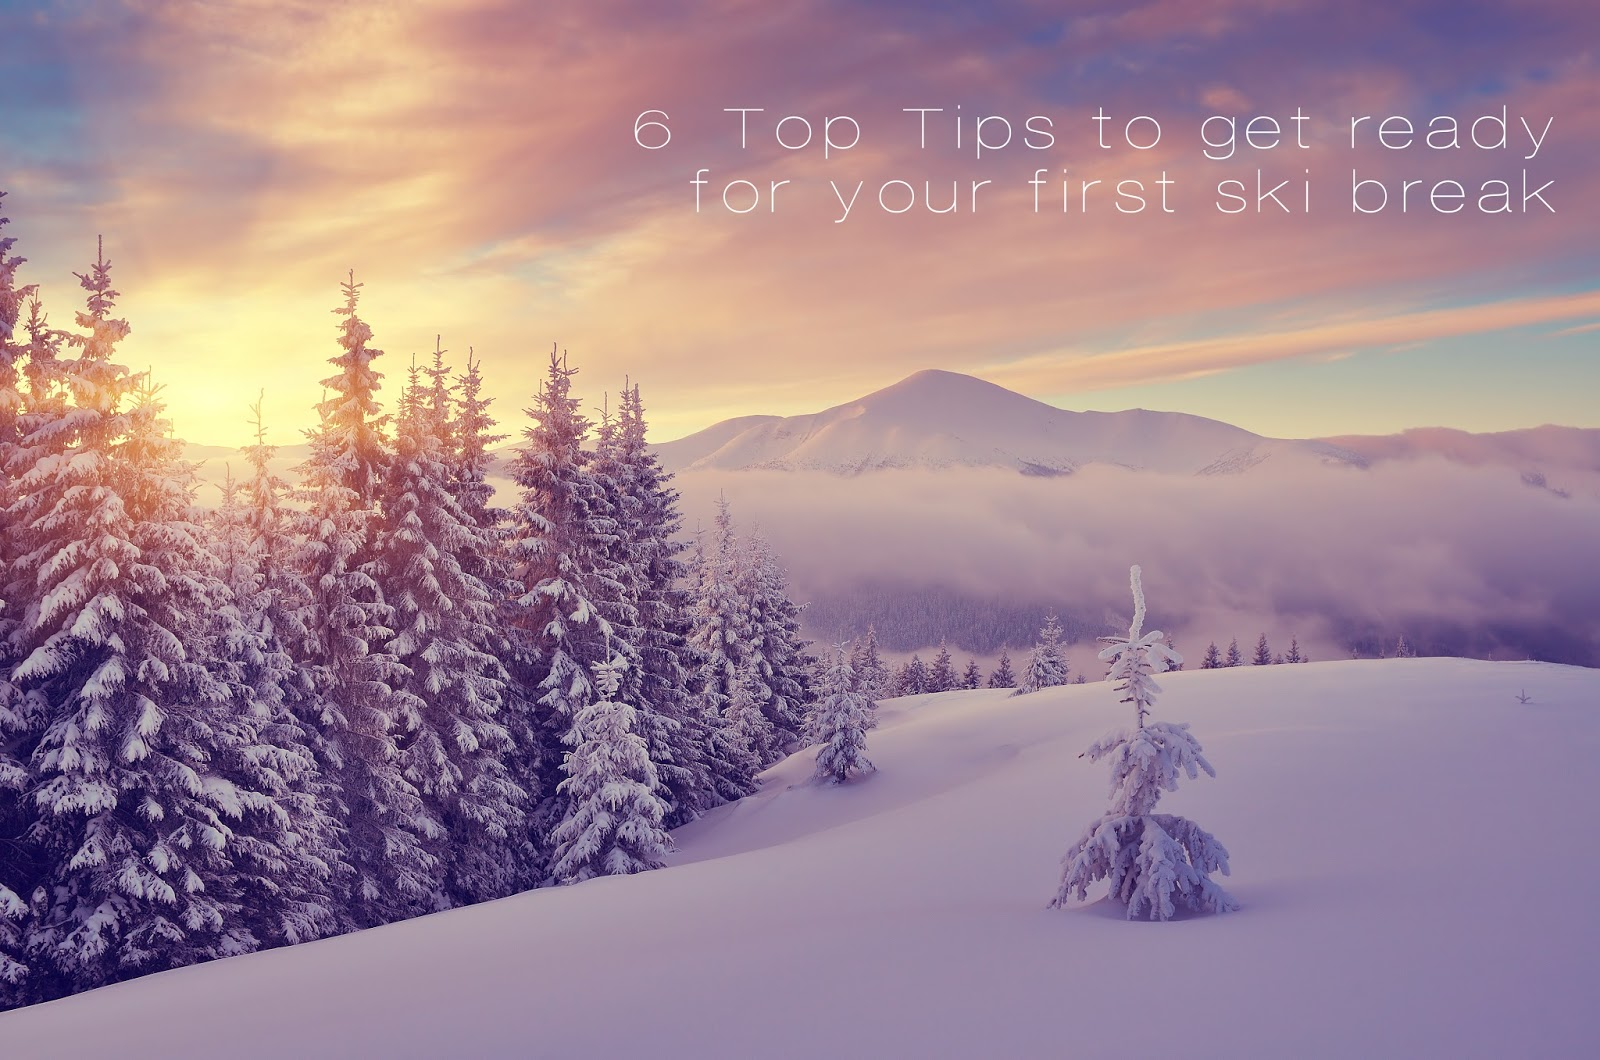 The Travel Post #6: Getting ready for your first ski break